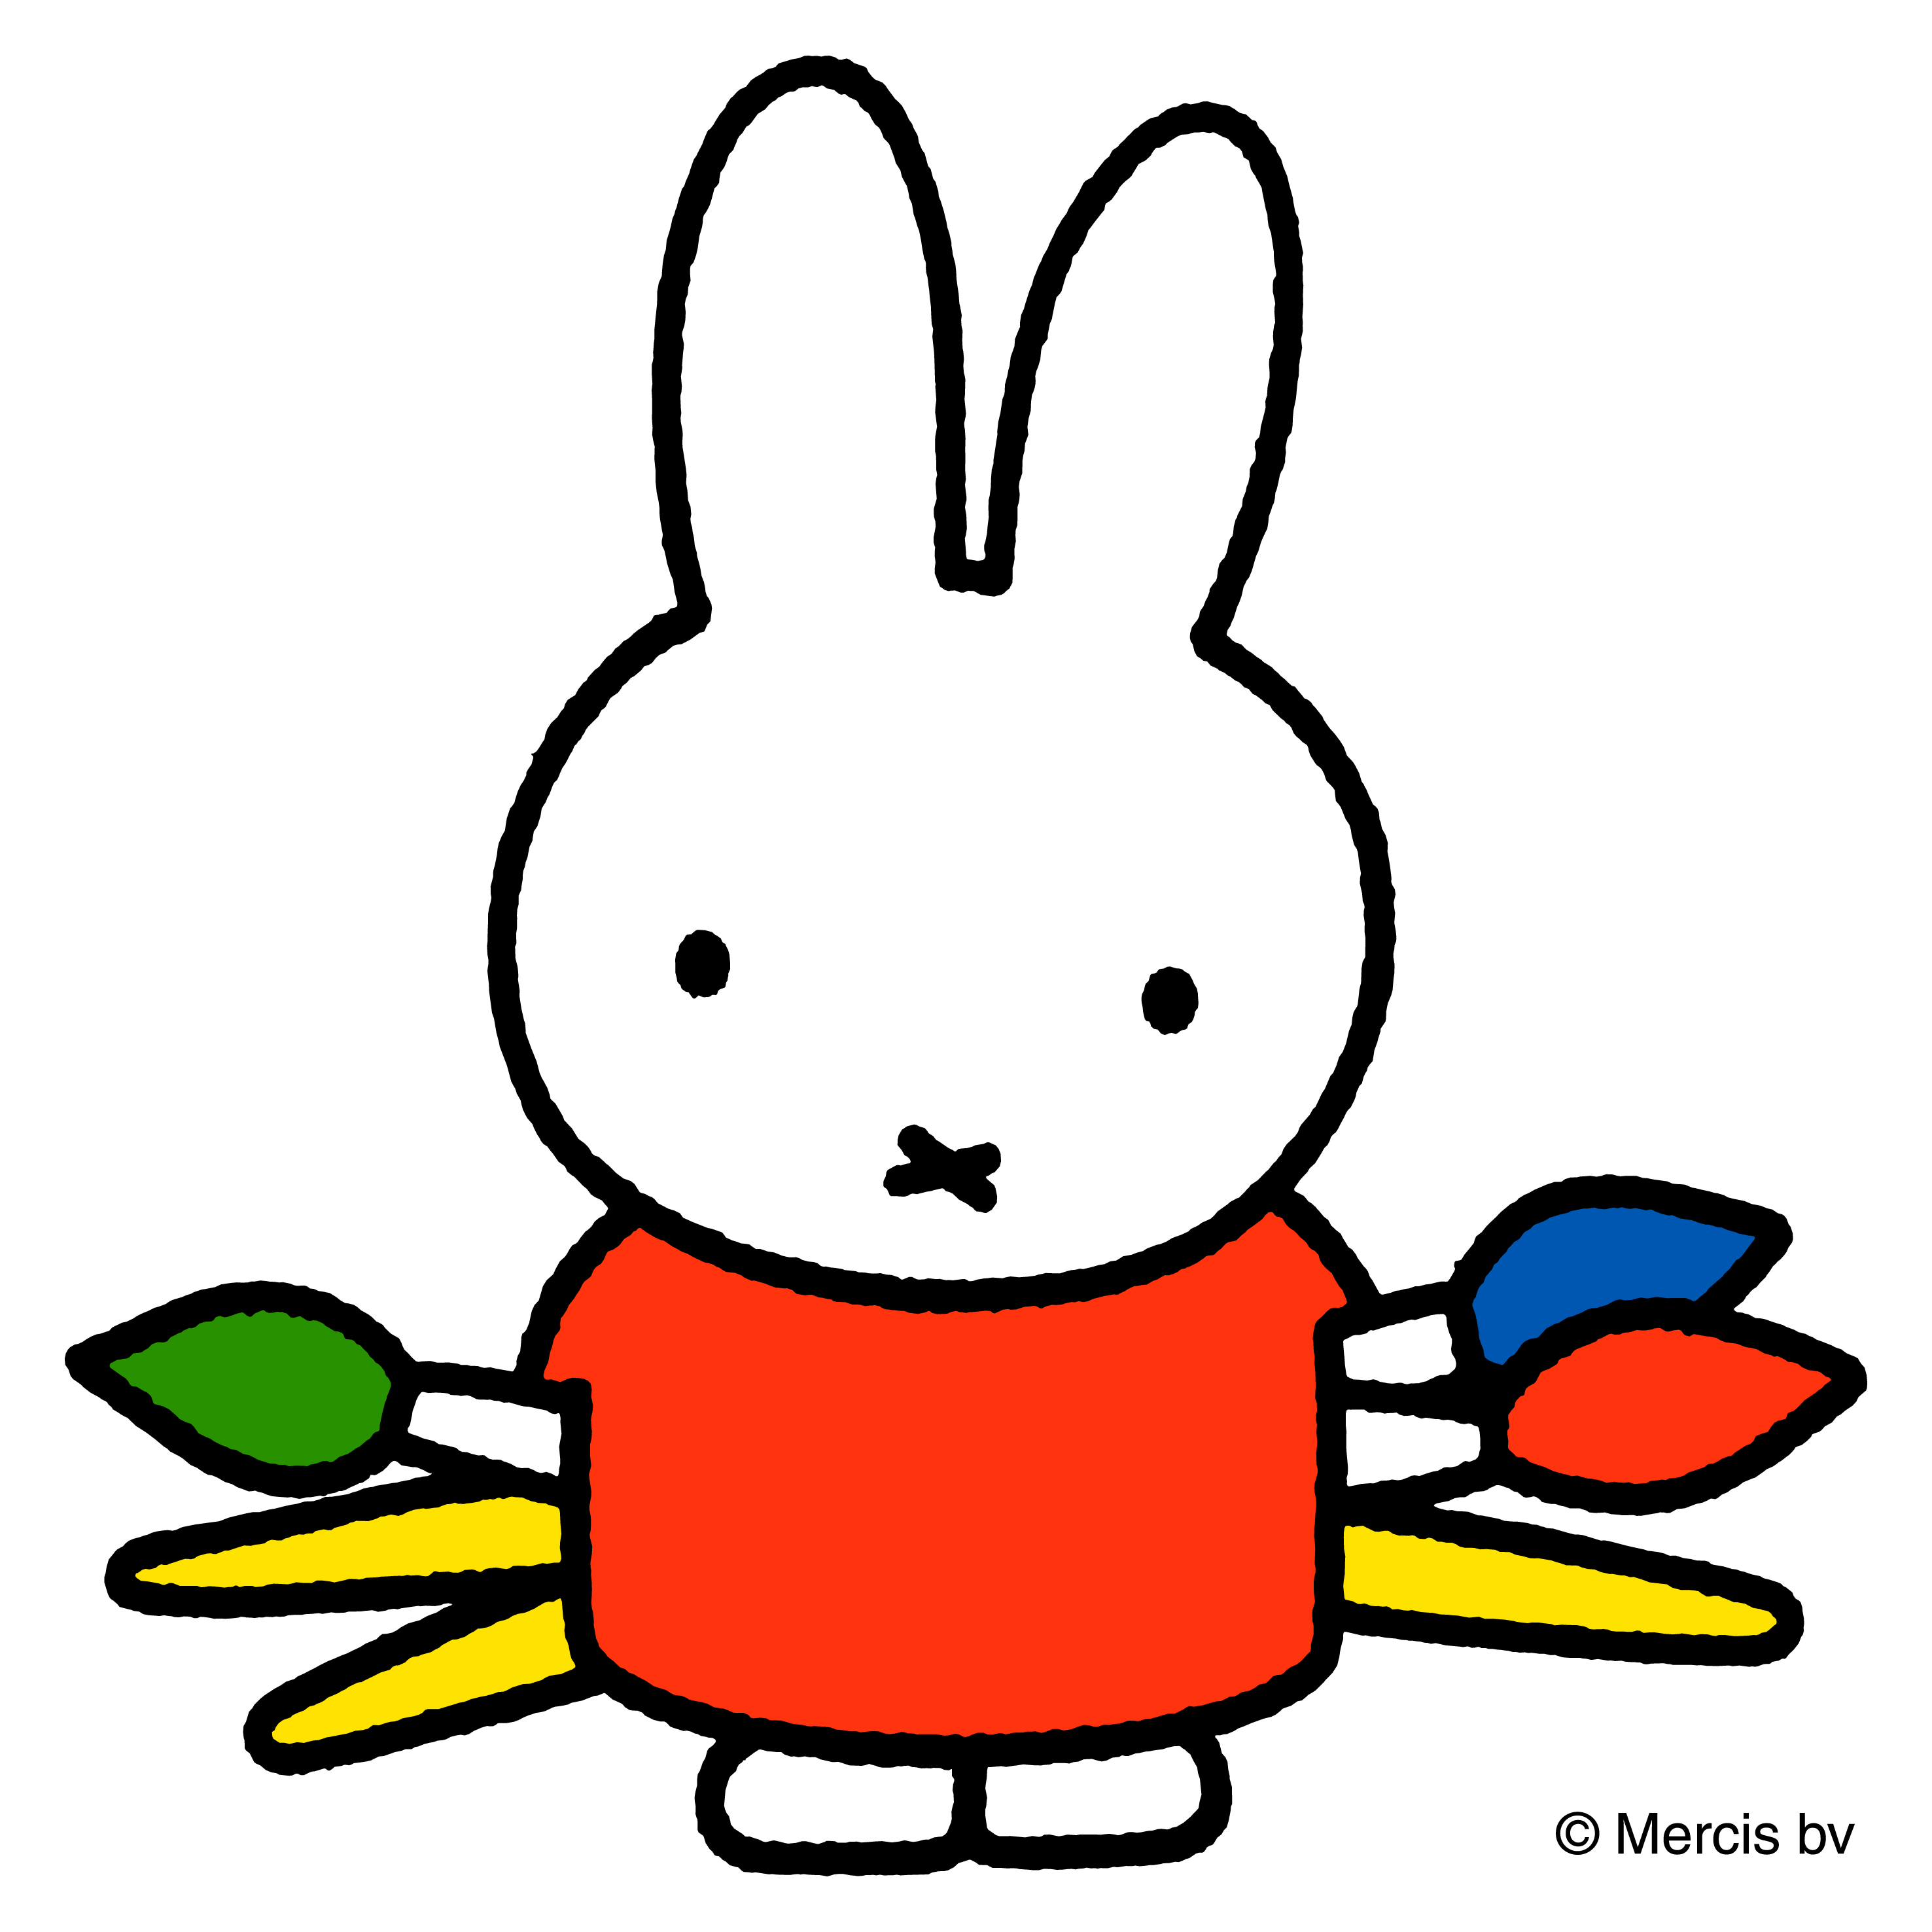 Miffy © Mercis bv